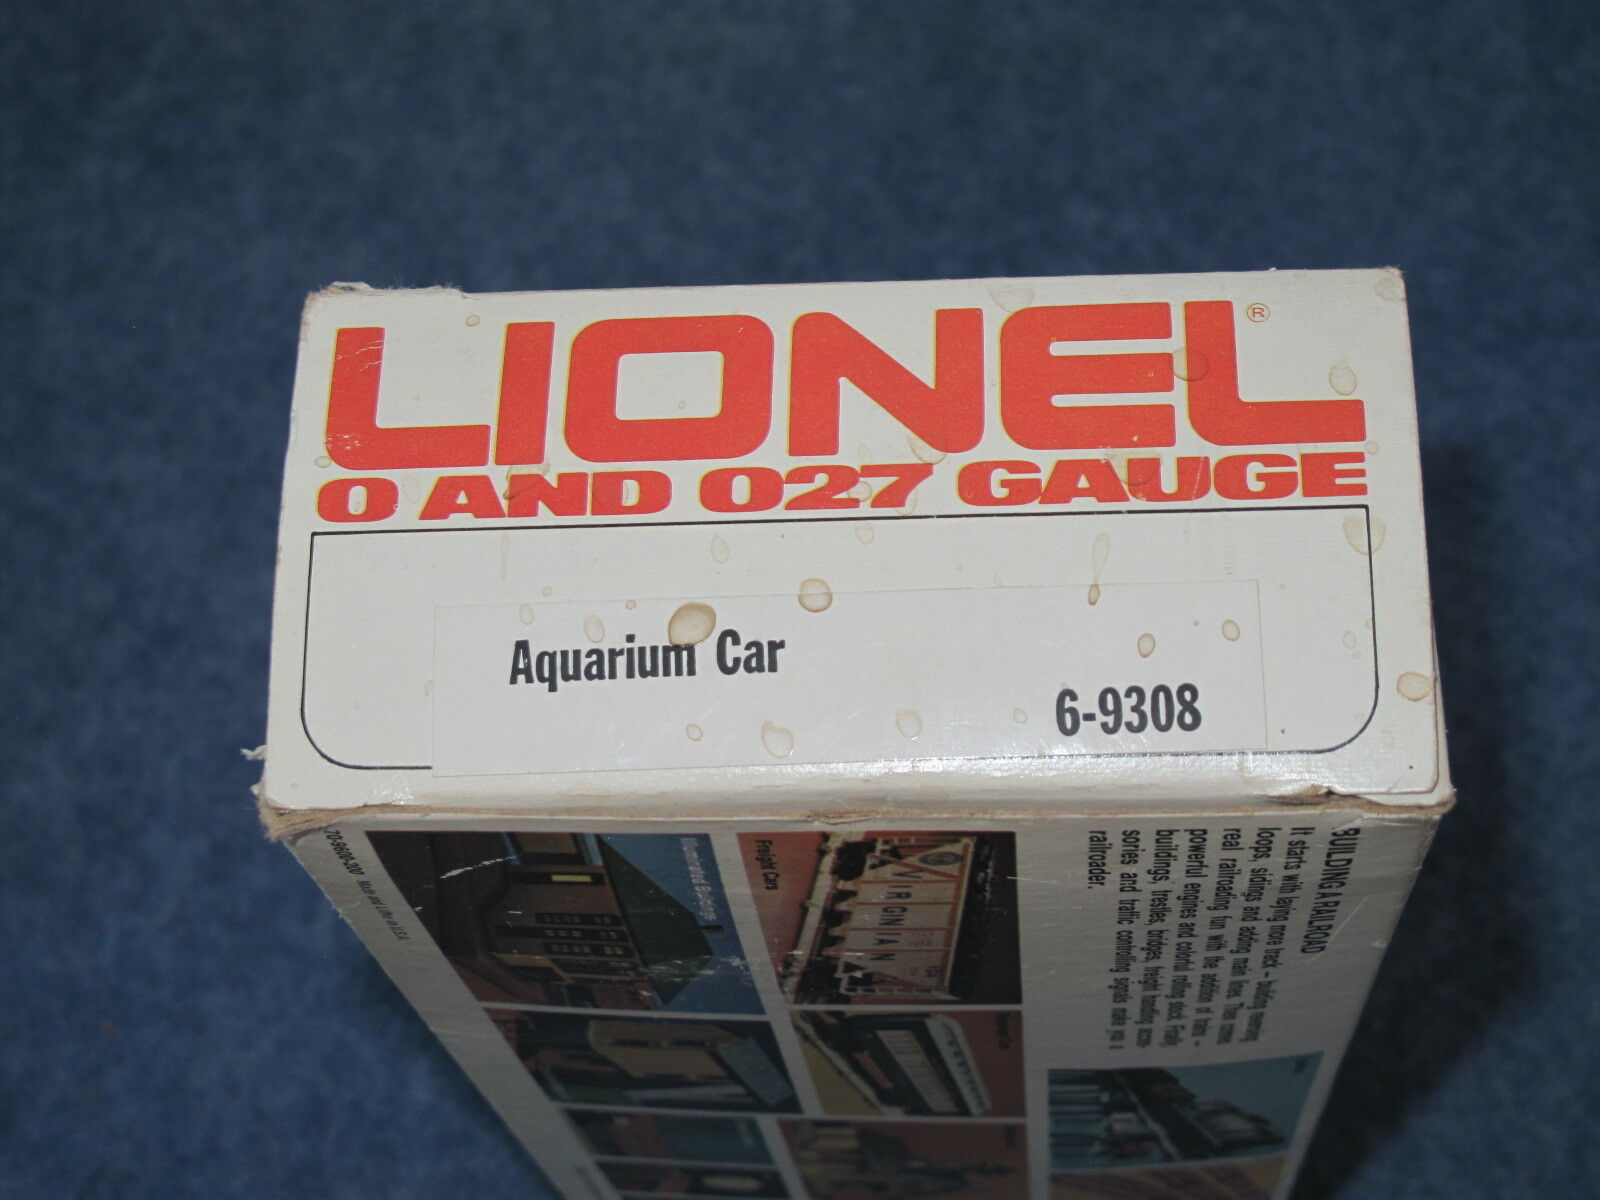 1981 Lionel 6-9308 6-9308 6-9308 Traveling Aquarium Car L1243 210fe2